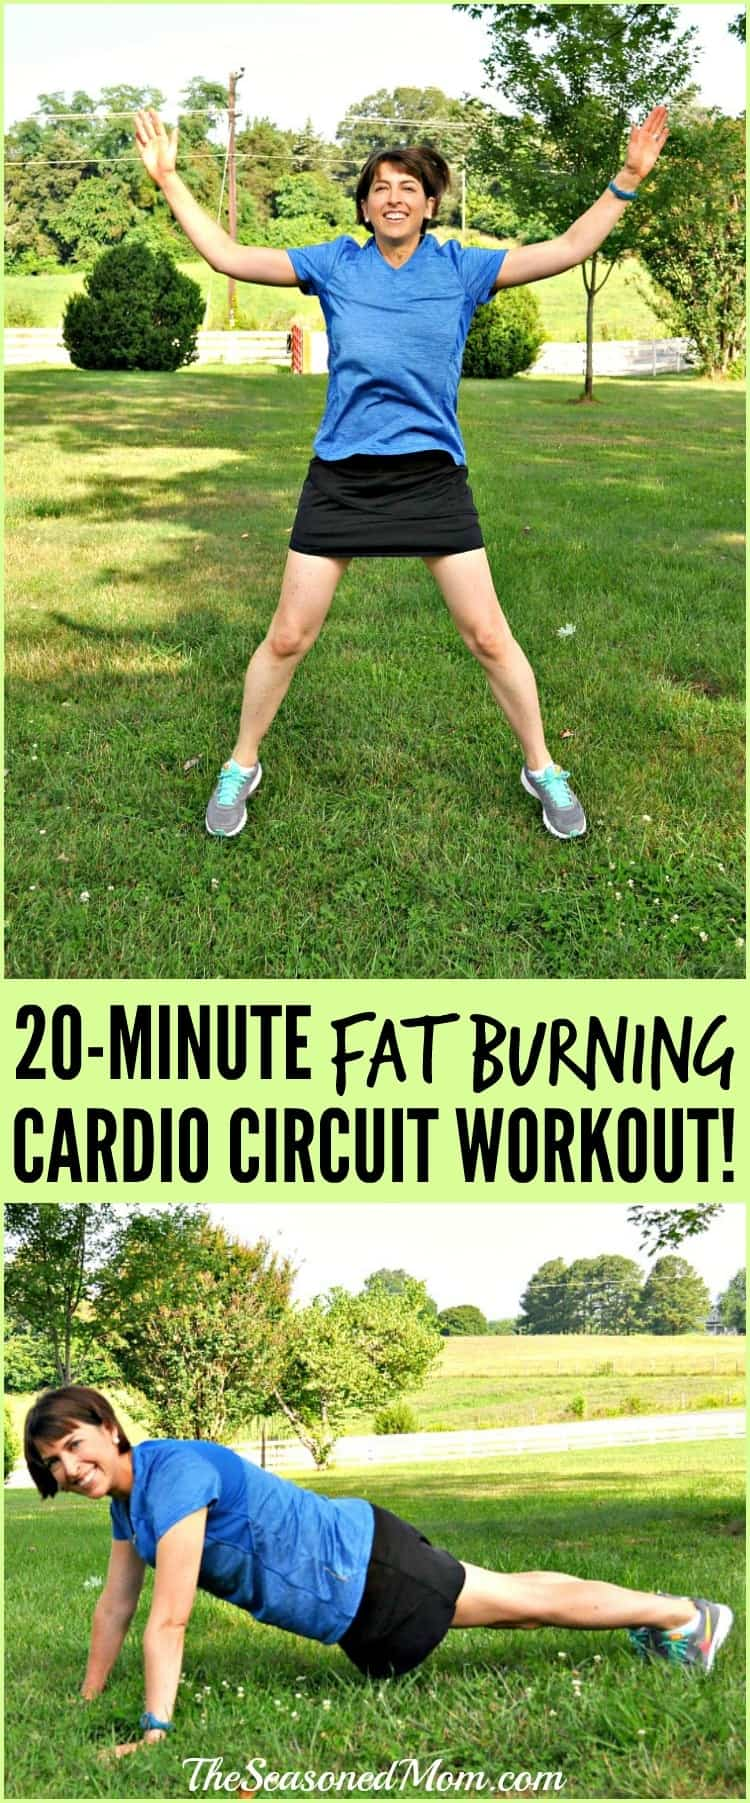 20 Minute Fat Burning Cardio Circuit Workout